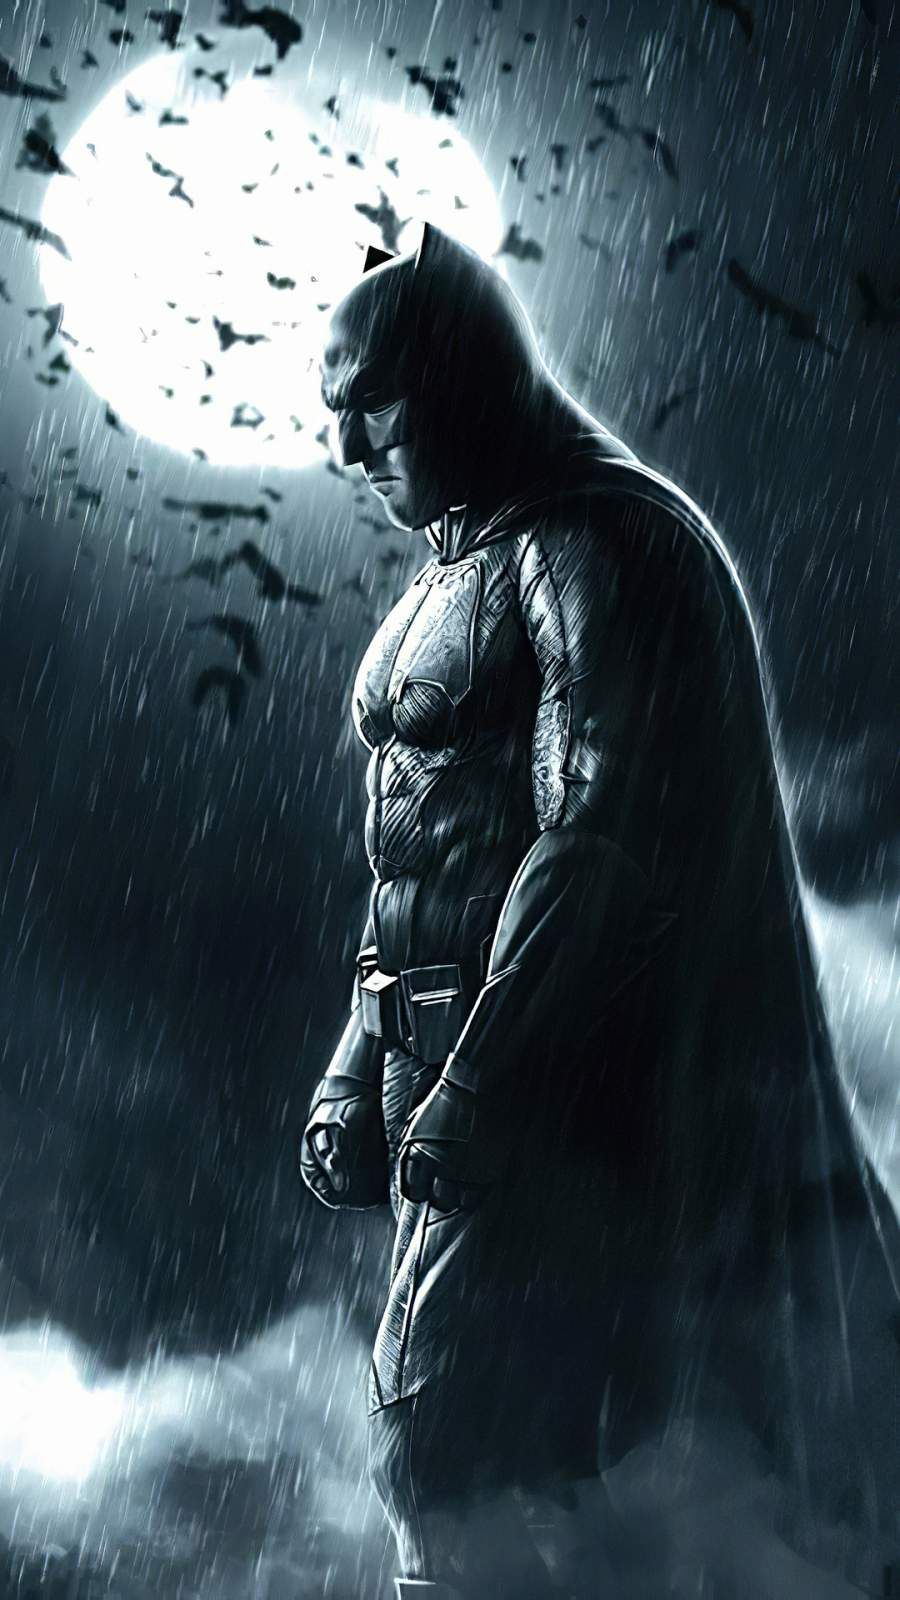 Iphone Wallpapers For Iphone 12 Iphone 11 Iphone X Iphone Xr Iphone 8 Plus High Quality Wal In 2021 Batman Wallpaper Batman Joker Wallpaper Batman Wallpaper Iphone